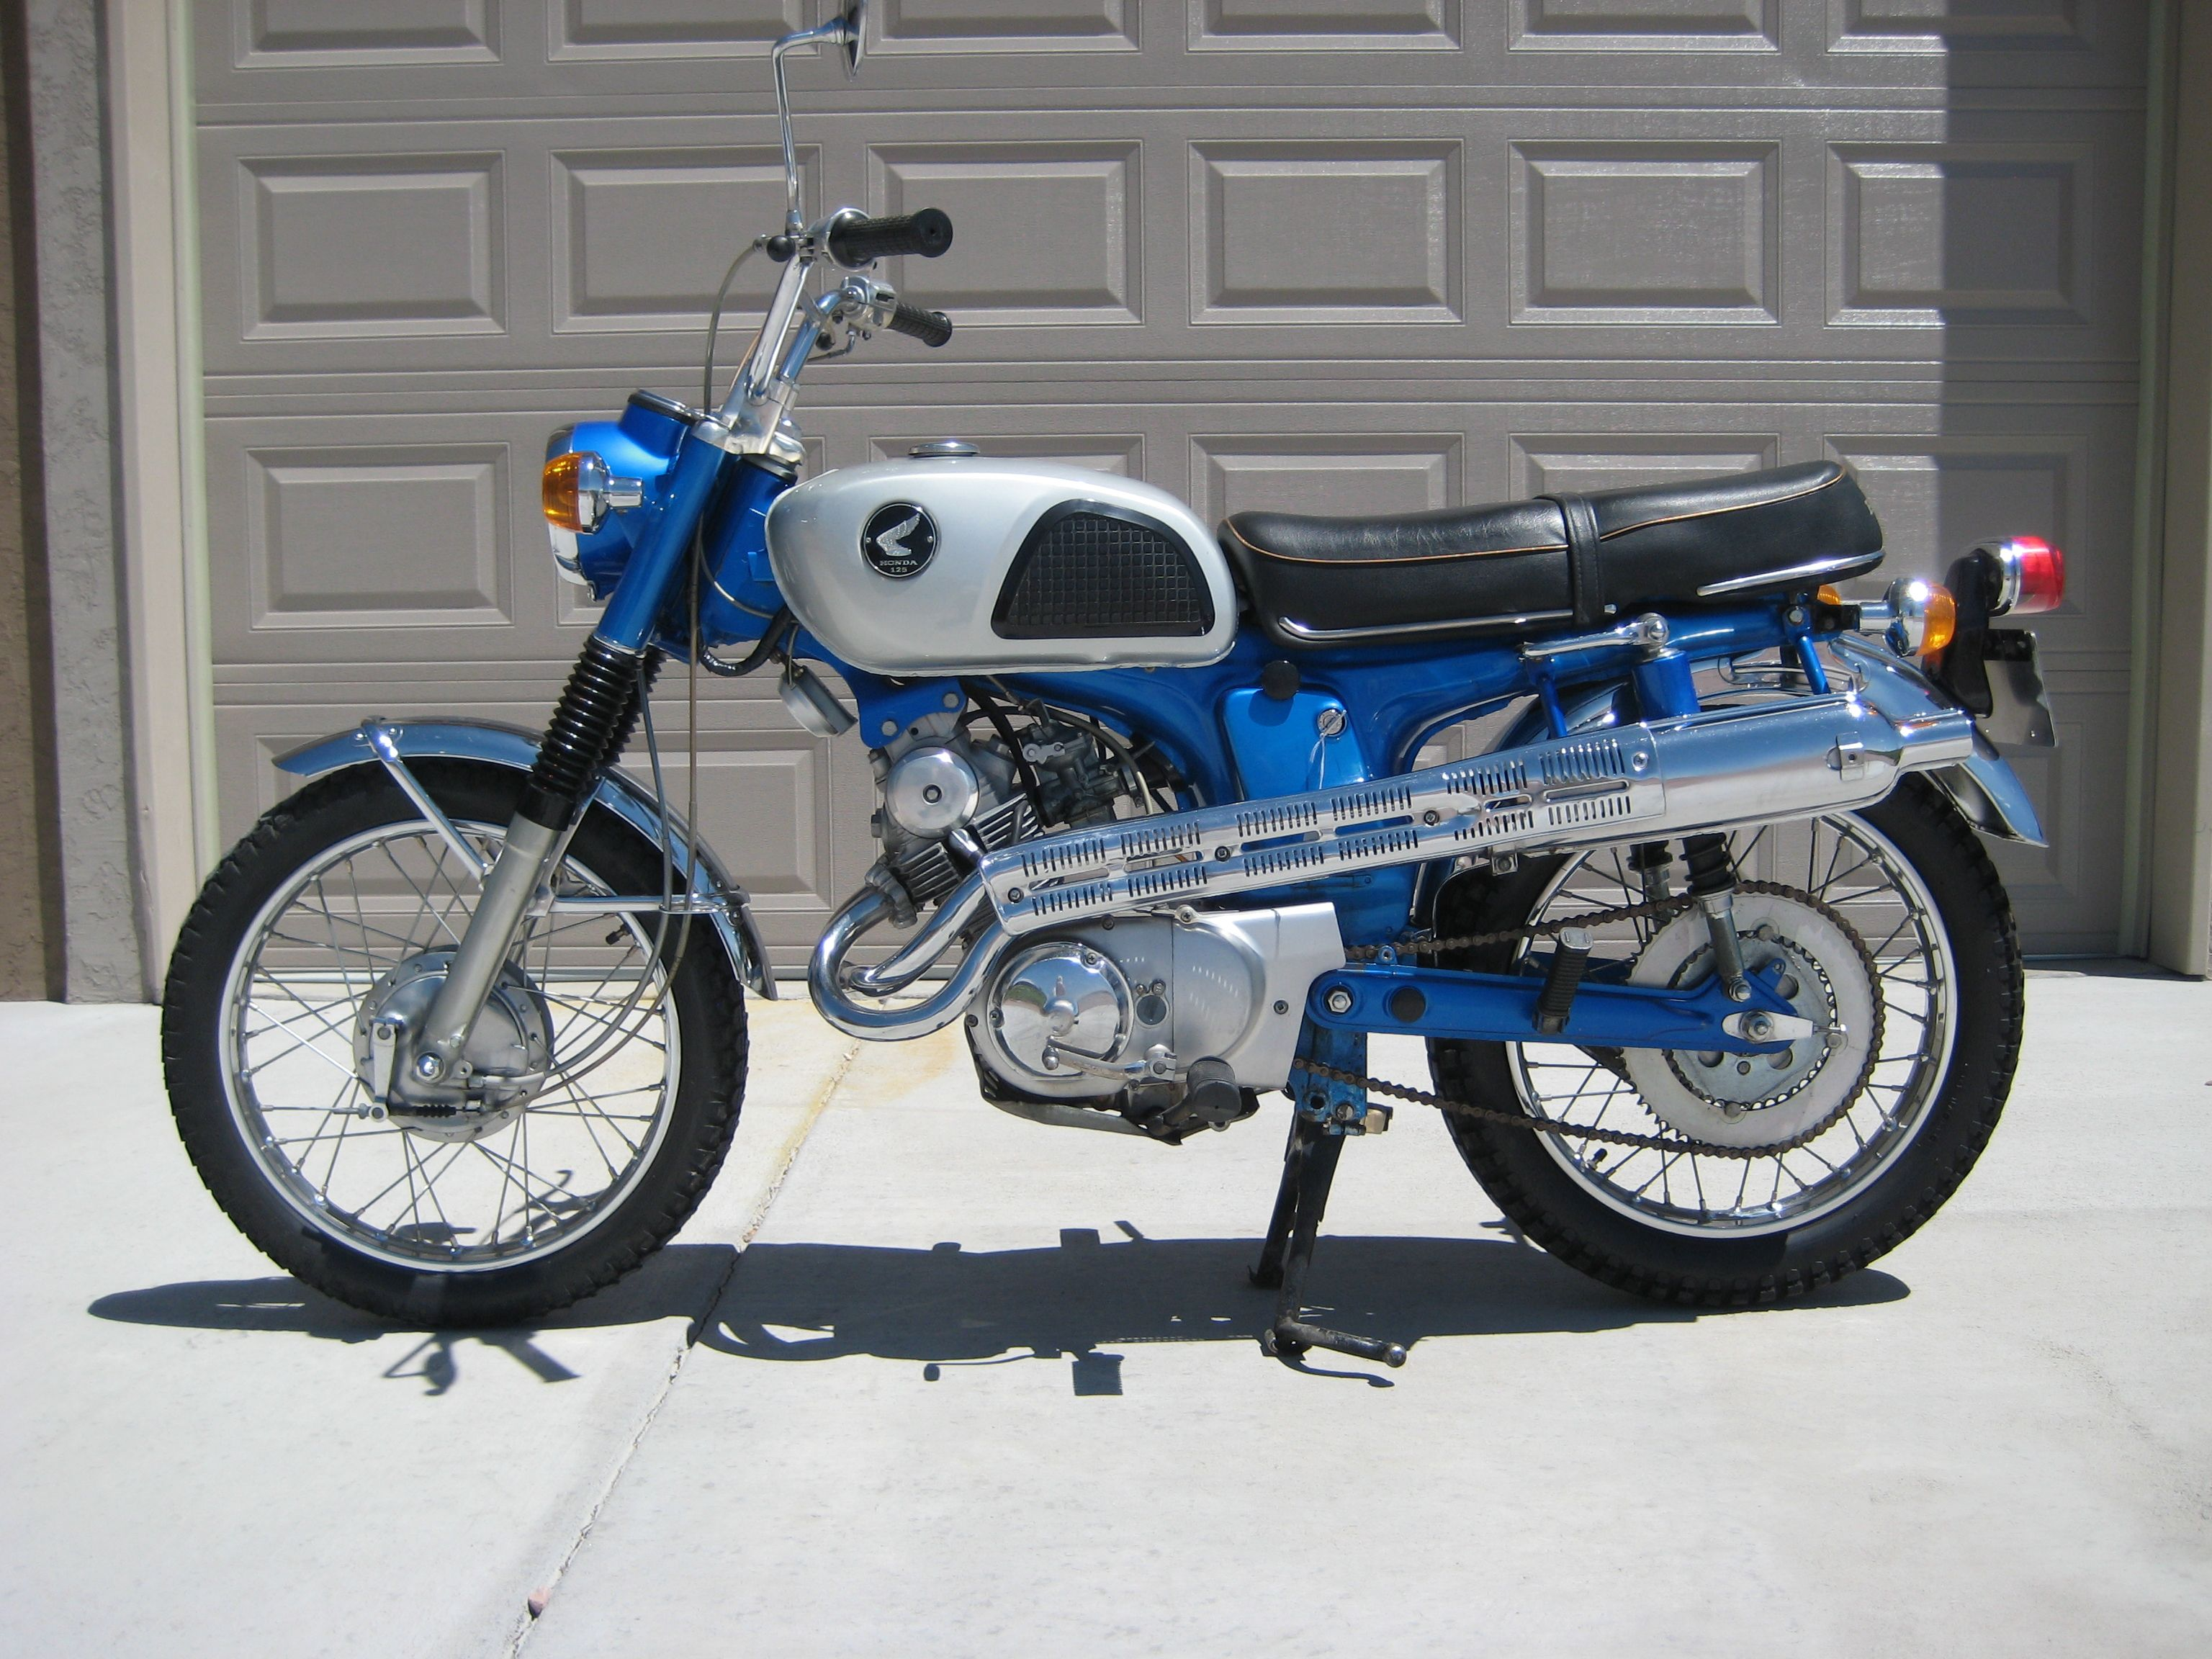 1968 honda cl125a 125cc twin with 4spd transmission. Black Bedroom Furniture Sets. Home Design Ideas